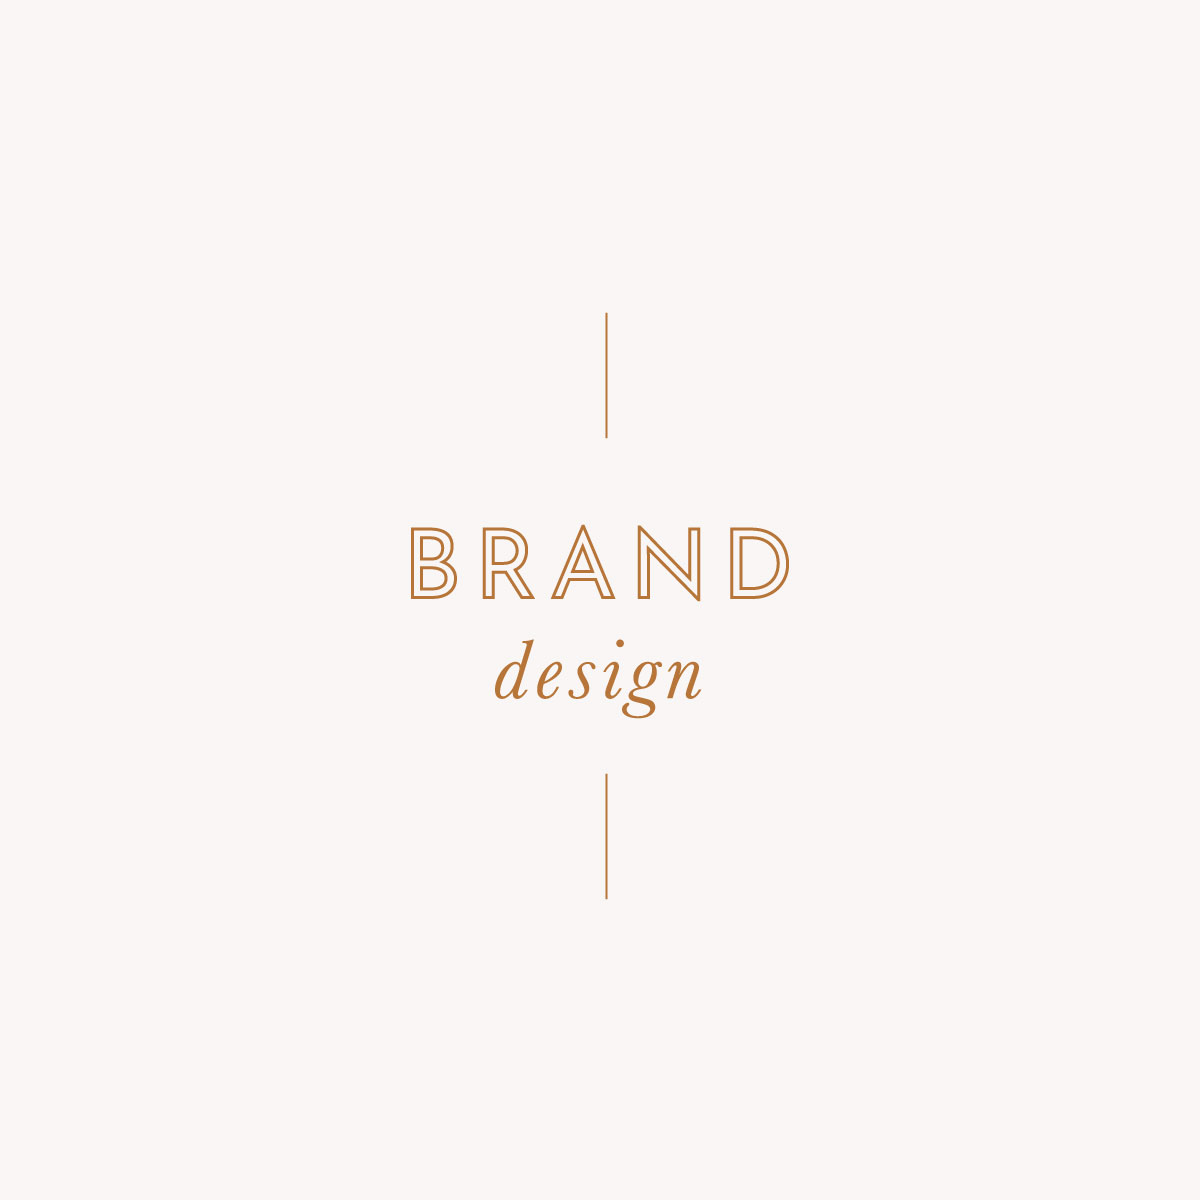 A brand is more than a logo - it's a strategic identity crafted to resonate with your ideal audience. With this package, we establish the essentials for your brand's overall look and feel. I can help you capture your brand's unique personality and style through tailor-made designs that elevate your business.  • brand discovery process  • brand strategy + mood board  • primary logo design  • secondary logo design  • color palette  • typography treatments  • brand style guide  • 2-3 collateral